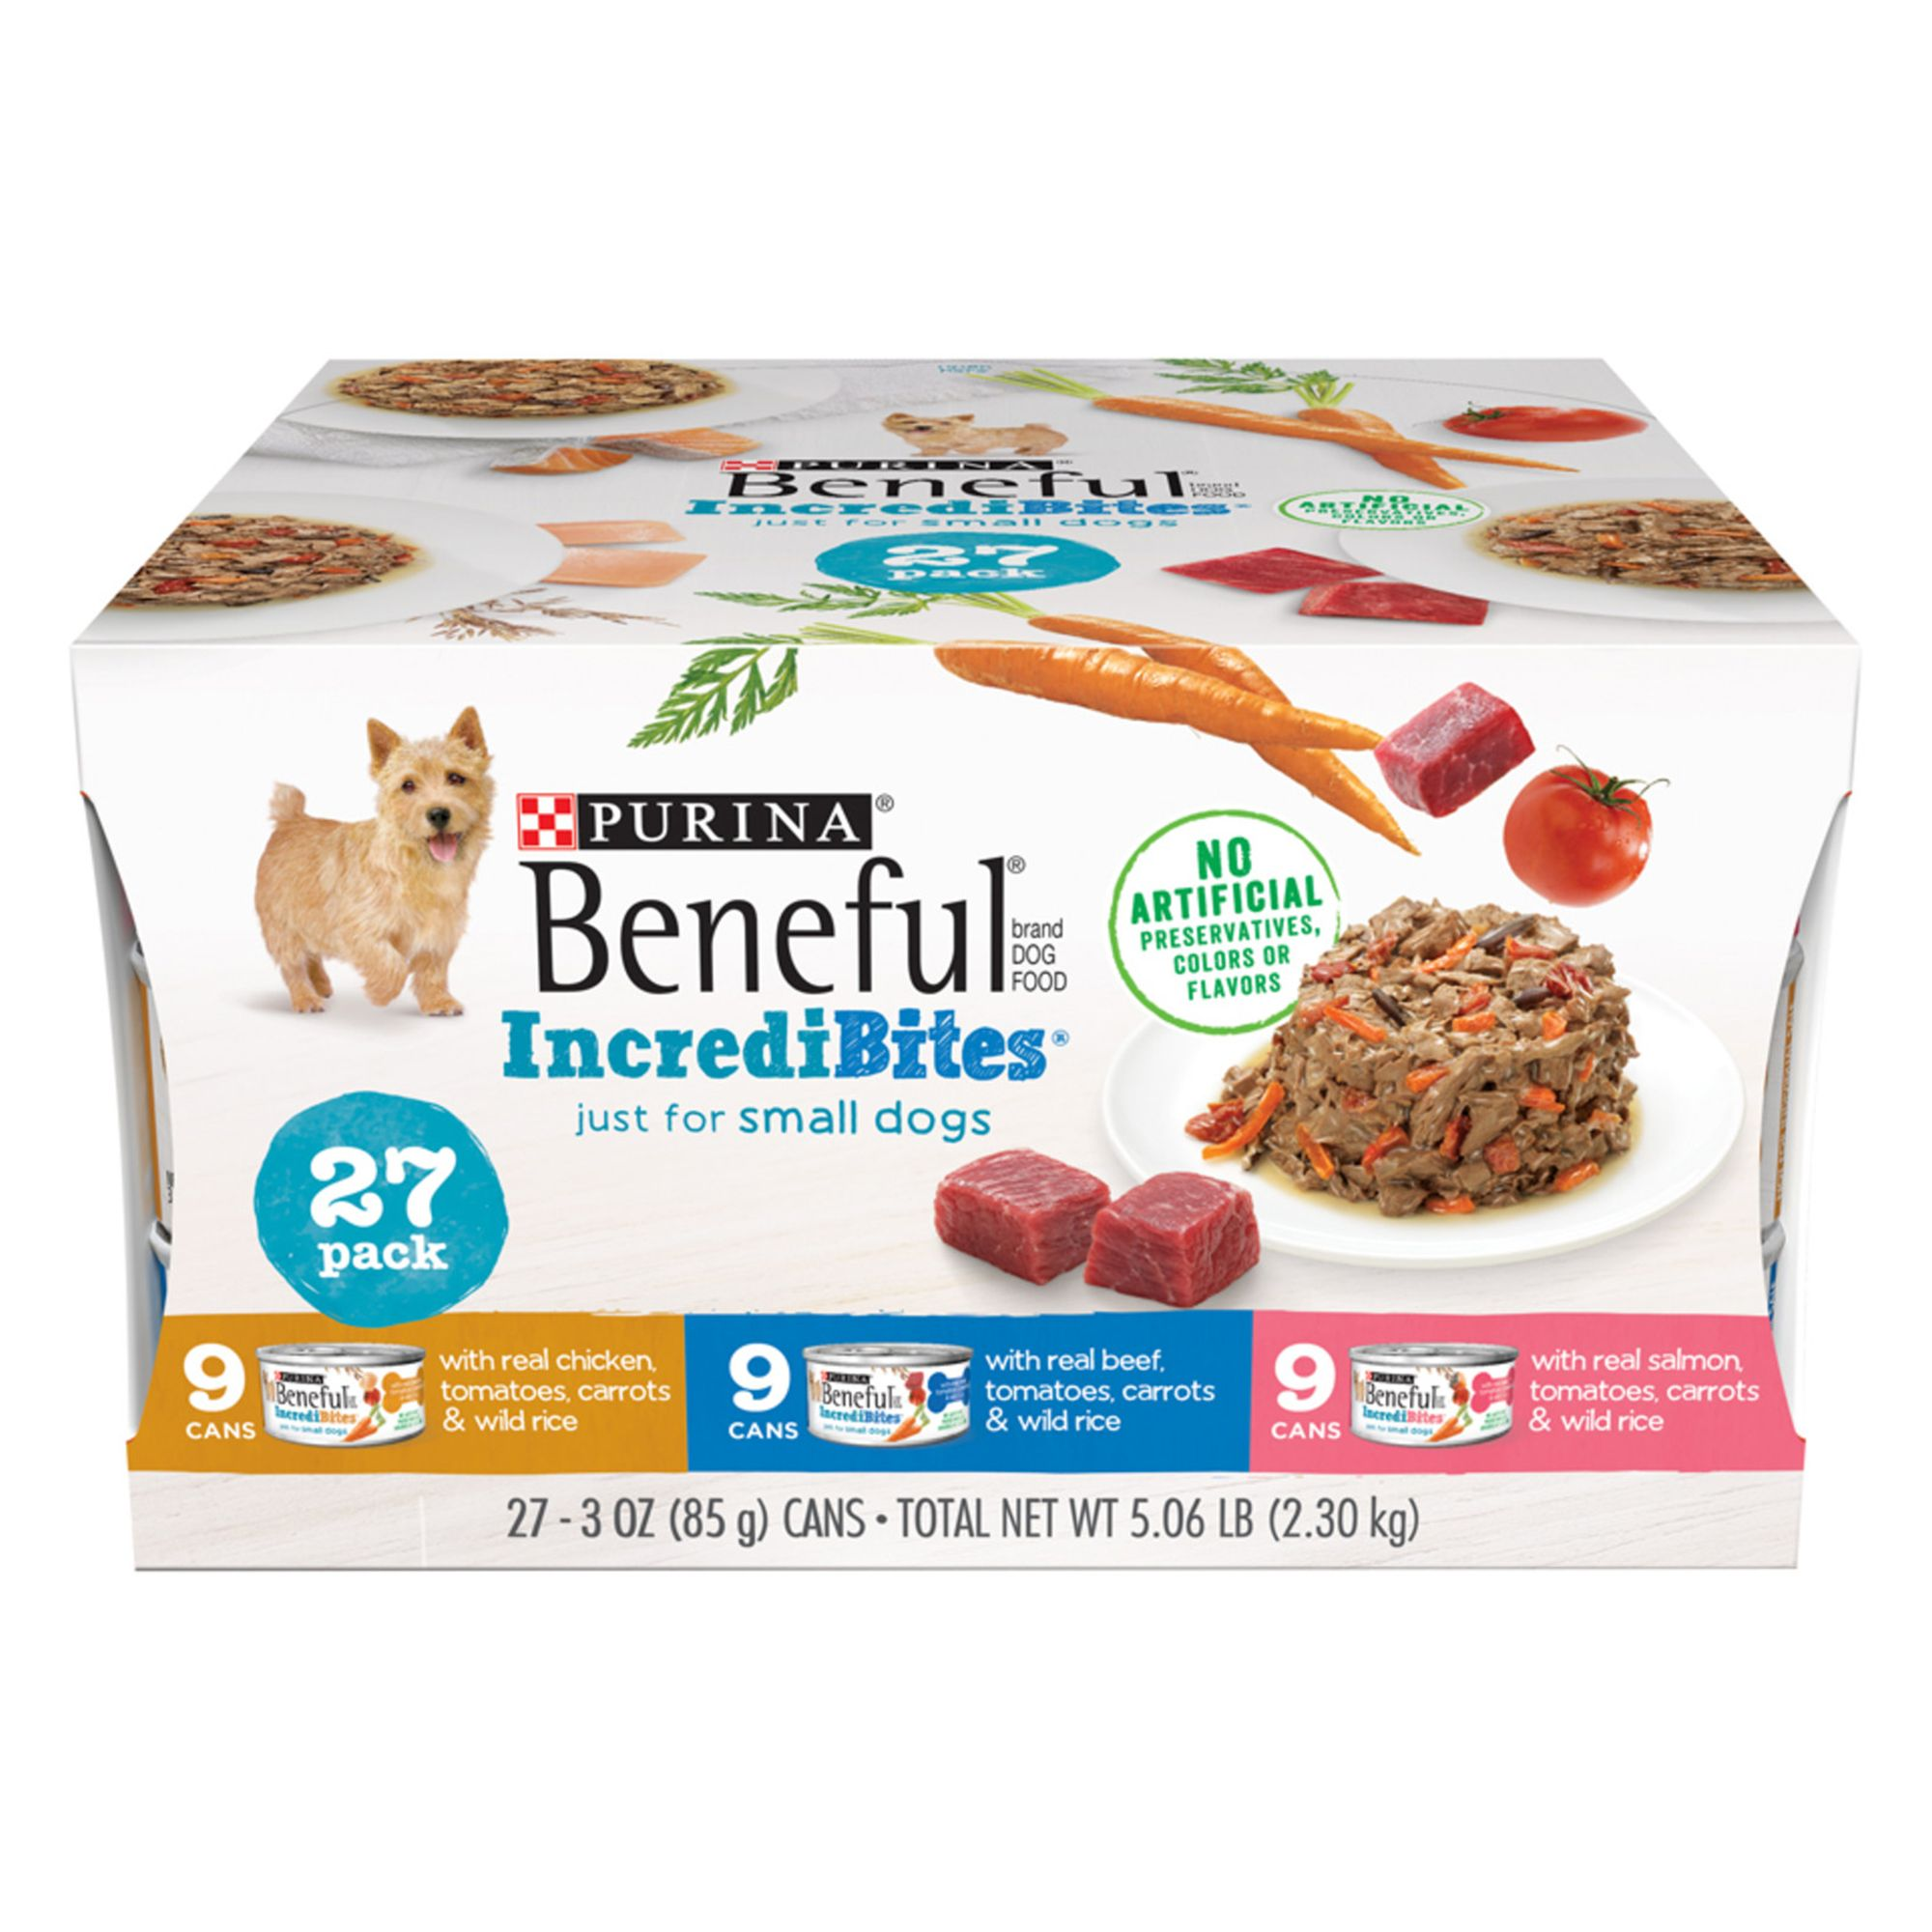 Purina Beneful Incredibites Small Dog Wet Food Variety Pack